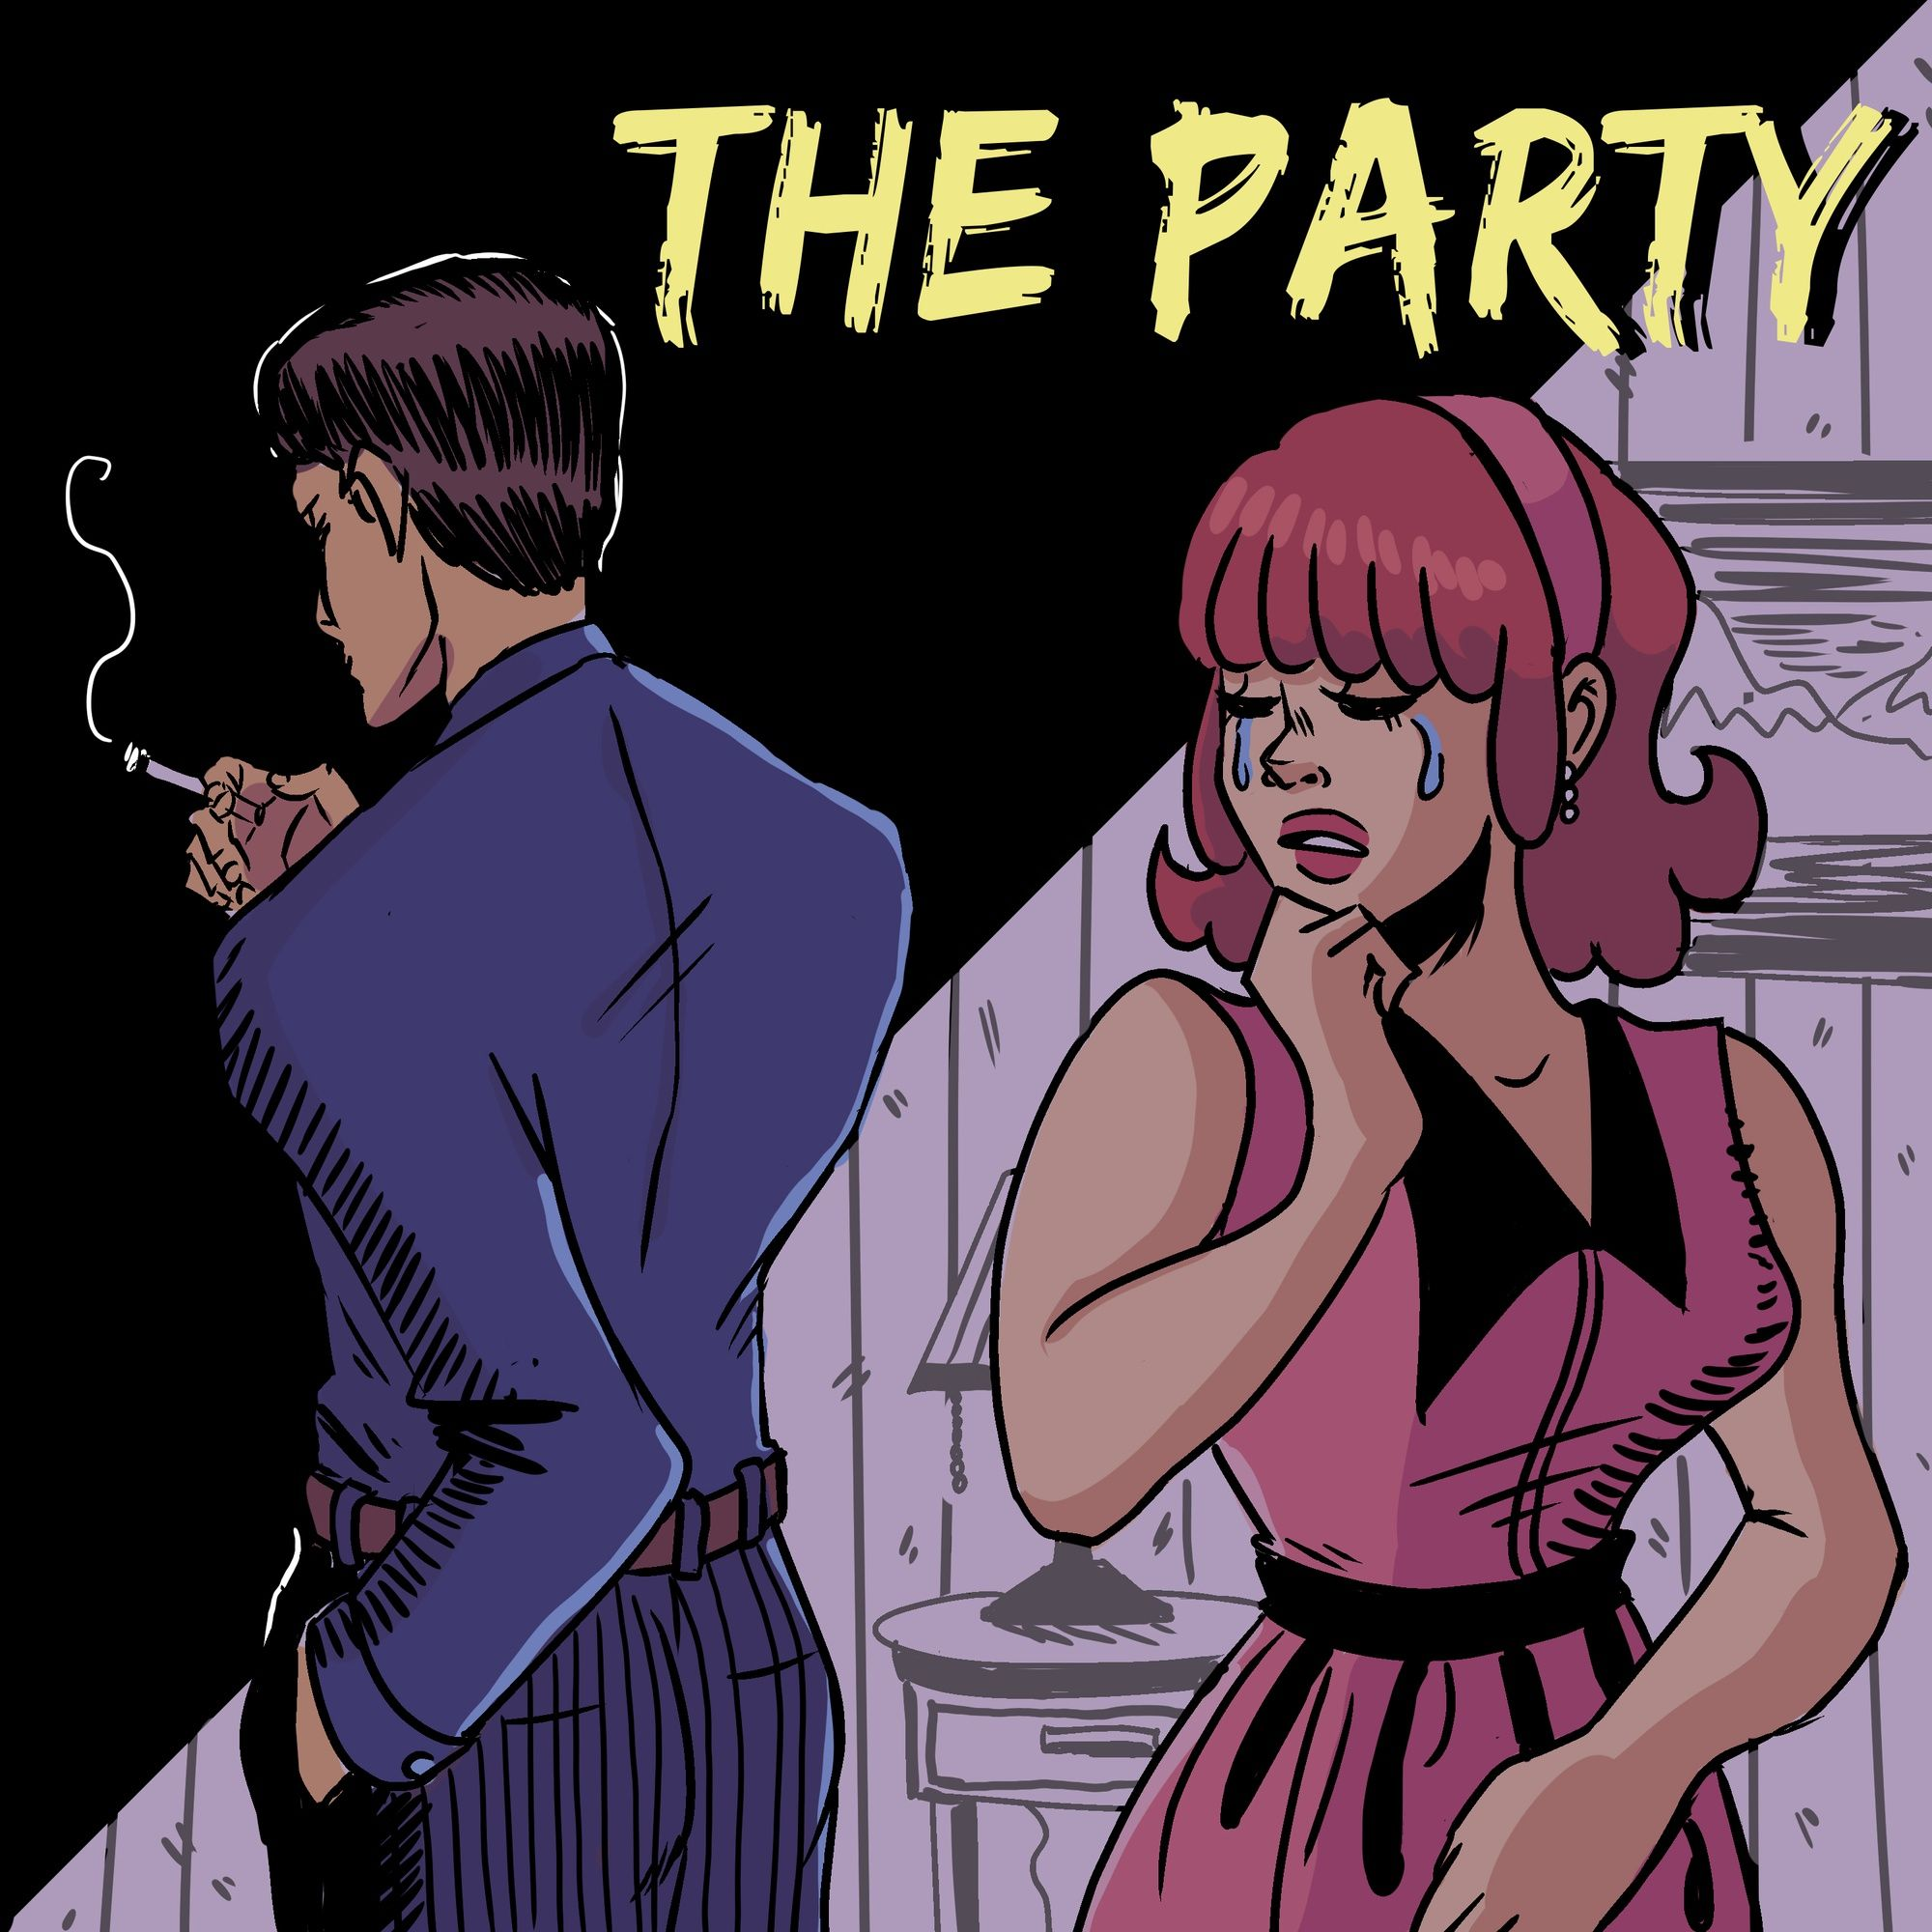 The Party (Chapter 1, Part 2 of MITGR)